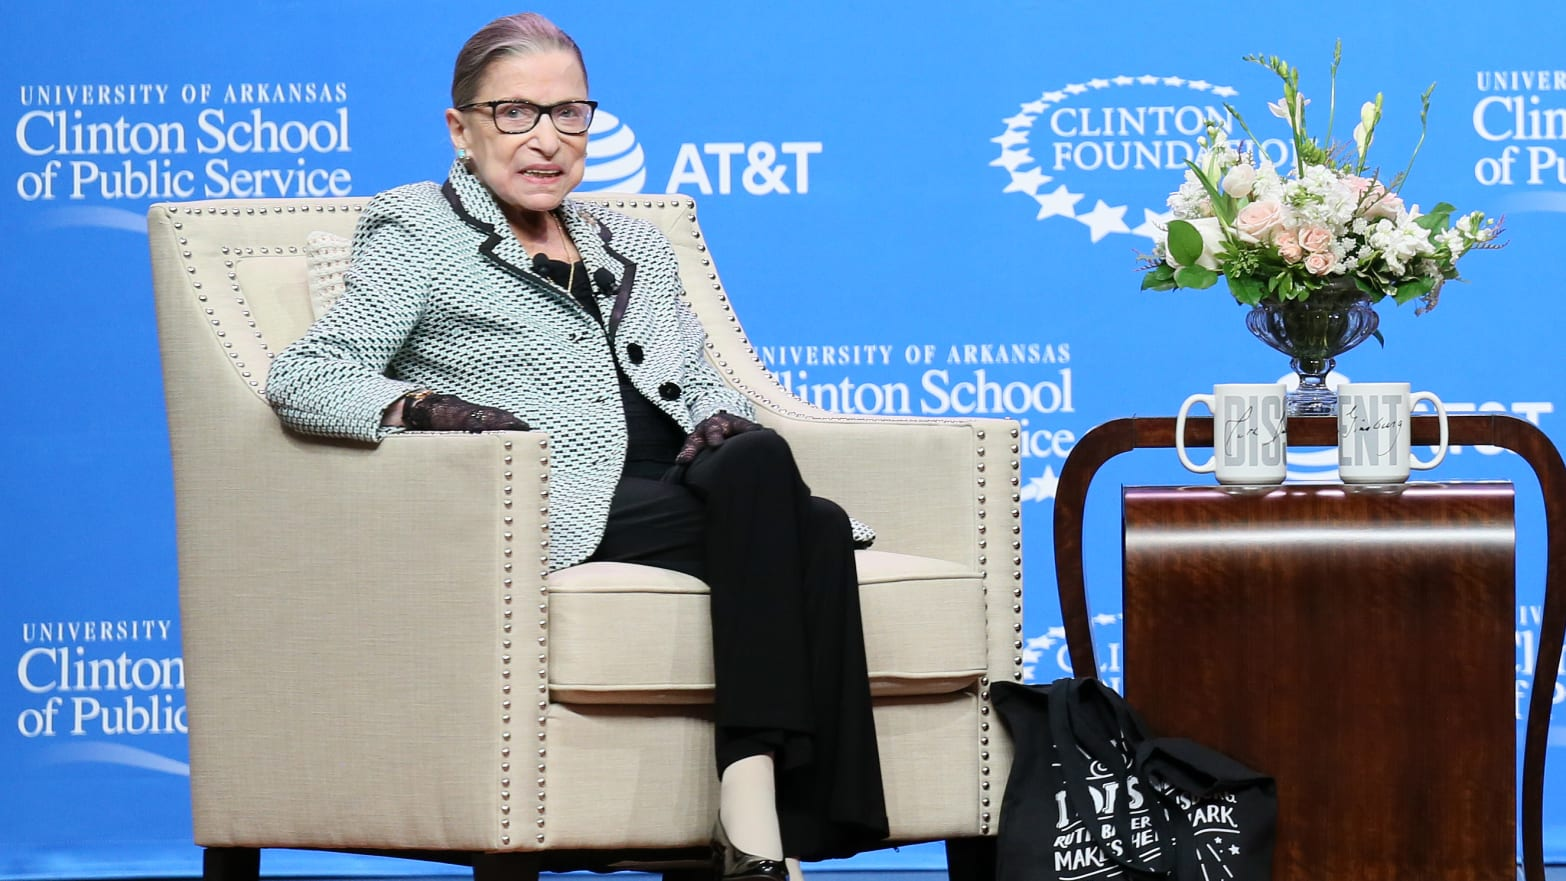 Justice Ruth Bader Ginsburg: My Work Keeps Me Going